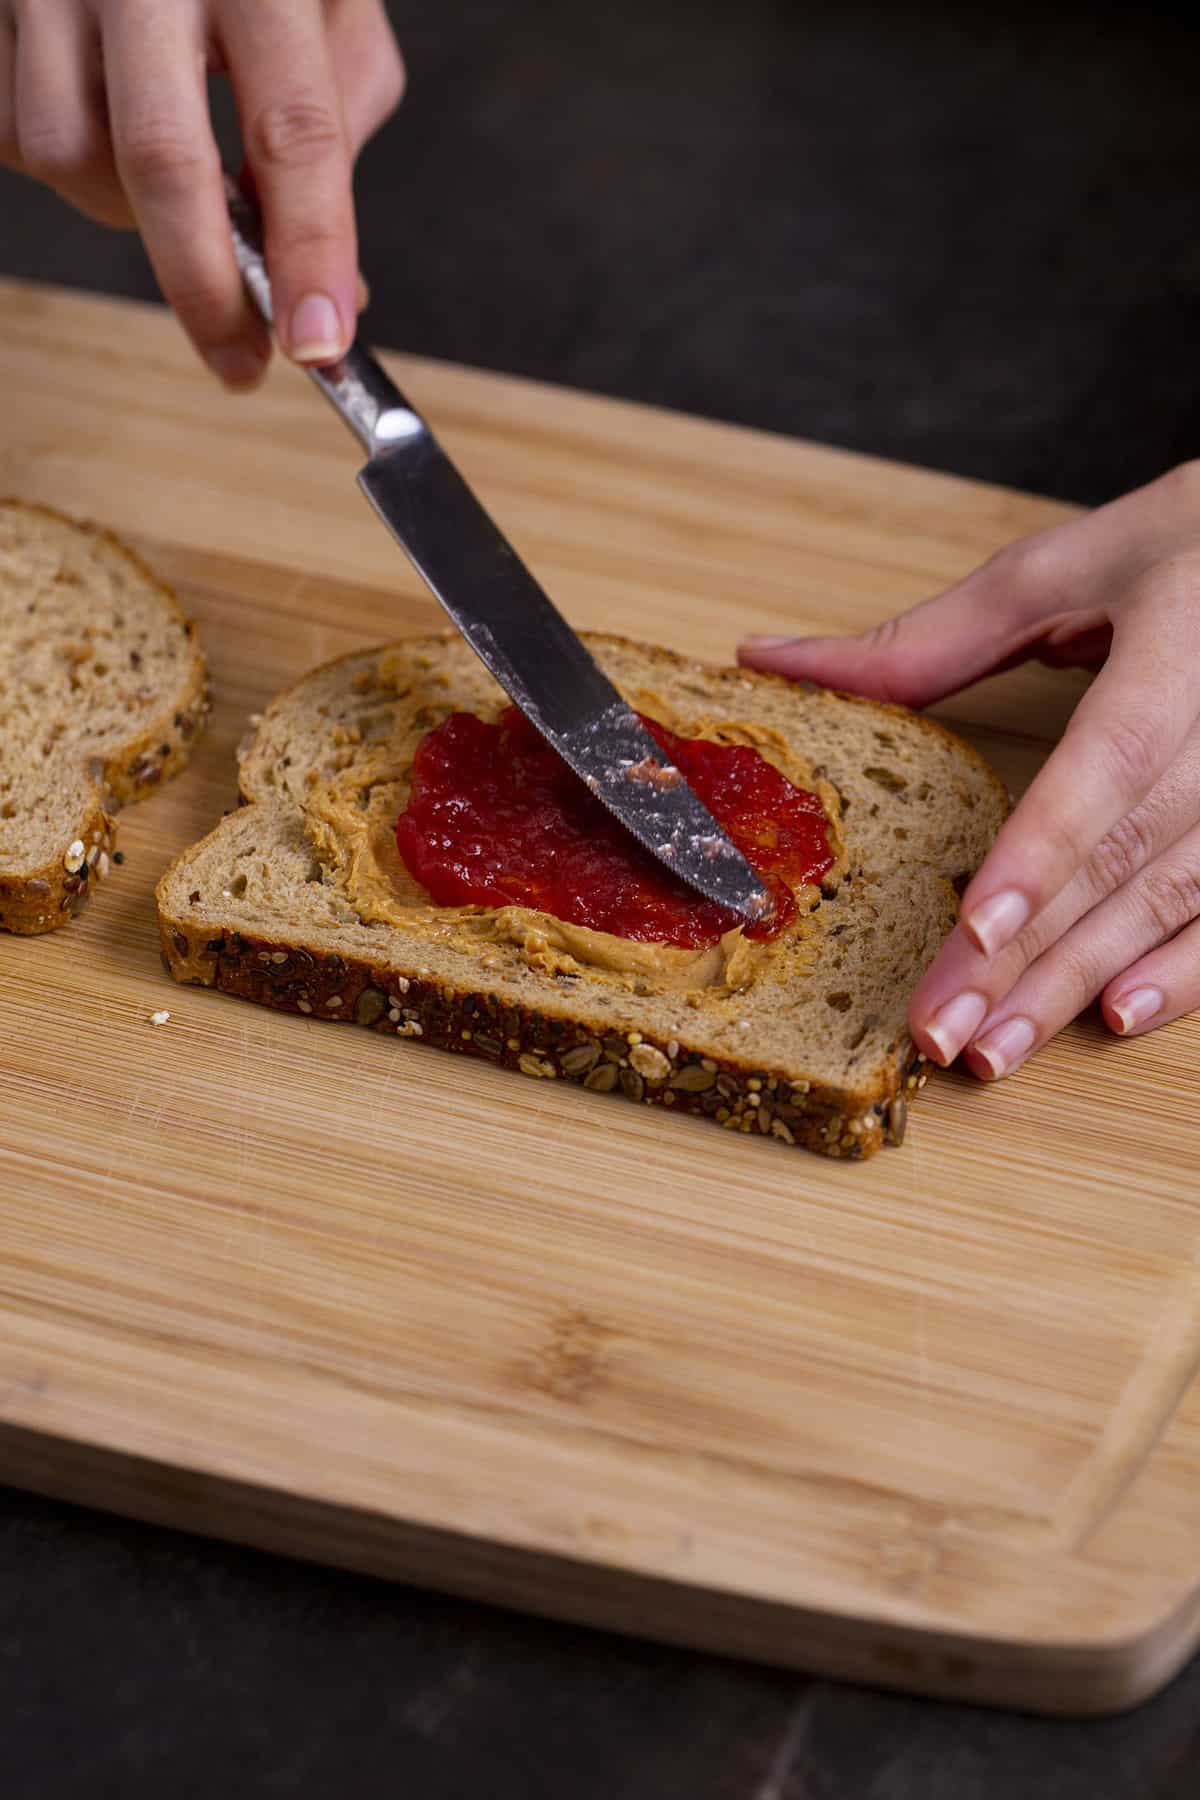 Spread peanut butter and then jelly onto the same slice of bread, keeping both spreads in the center of the bread.